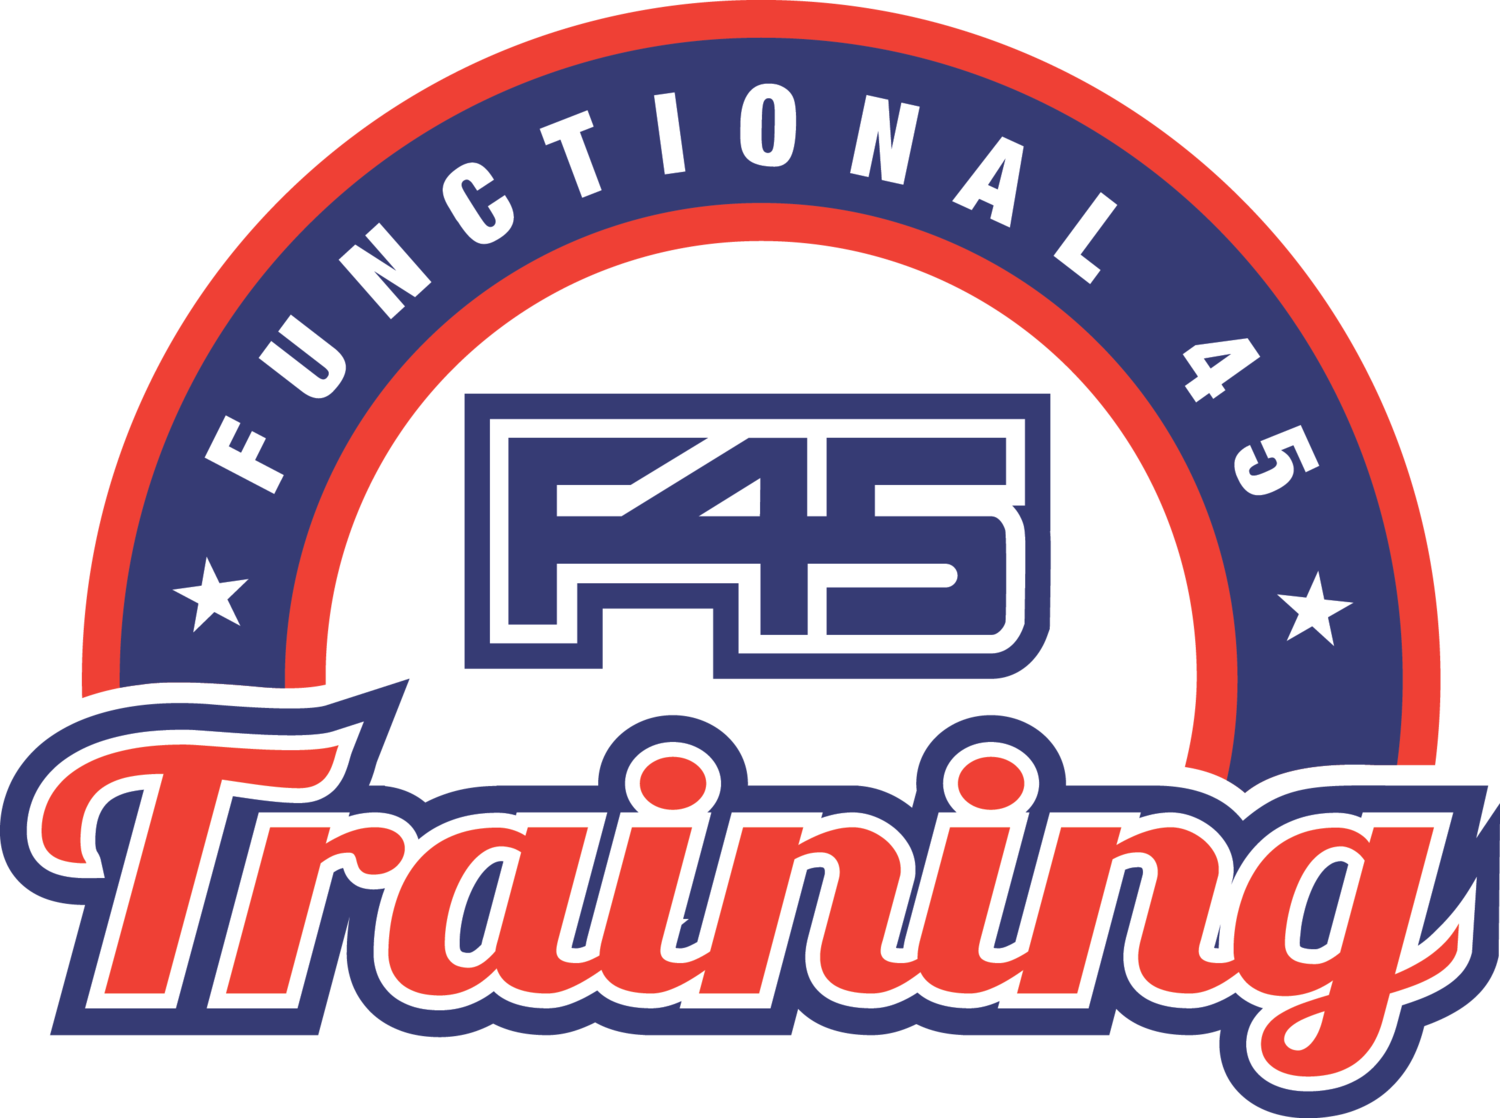 My name is Meaux and I'm an F45er!